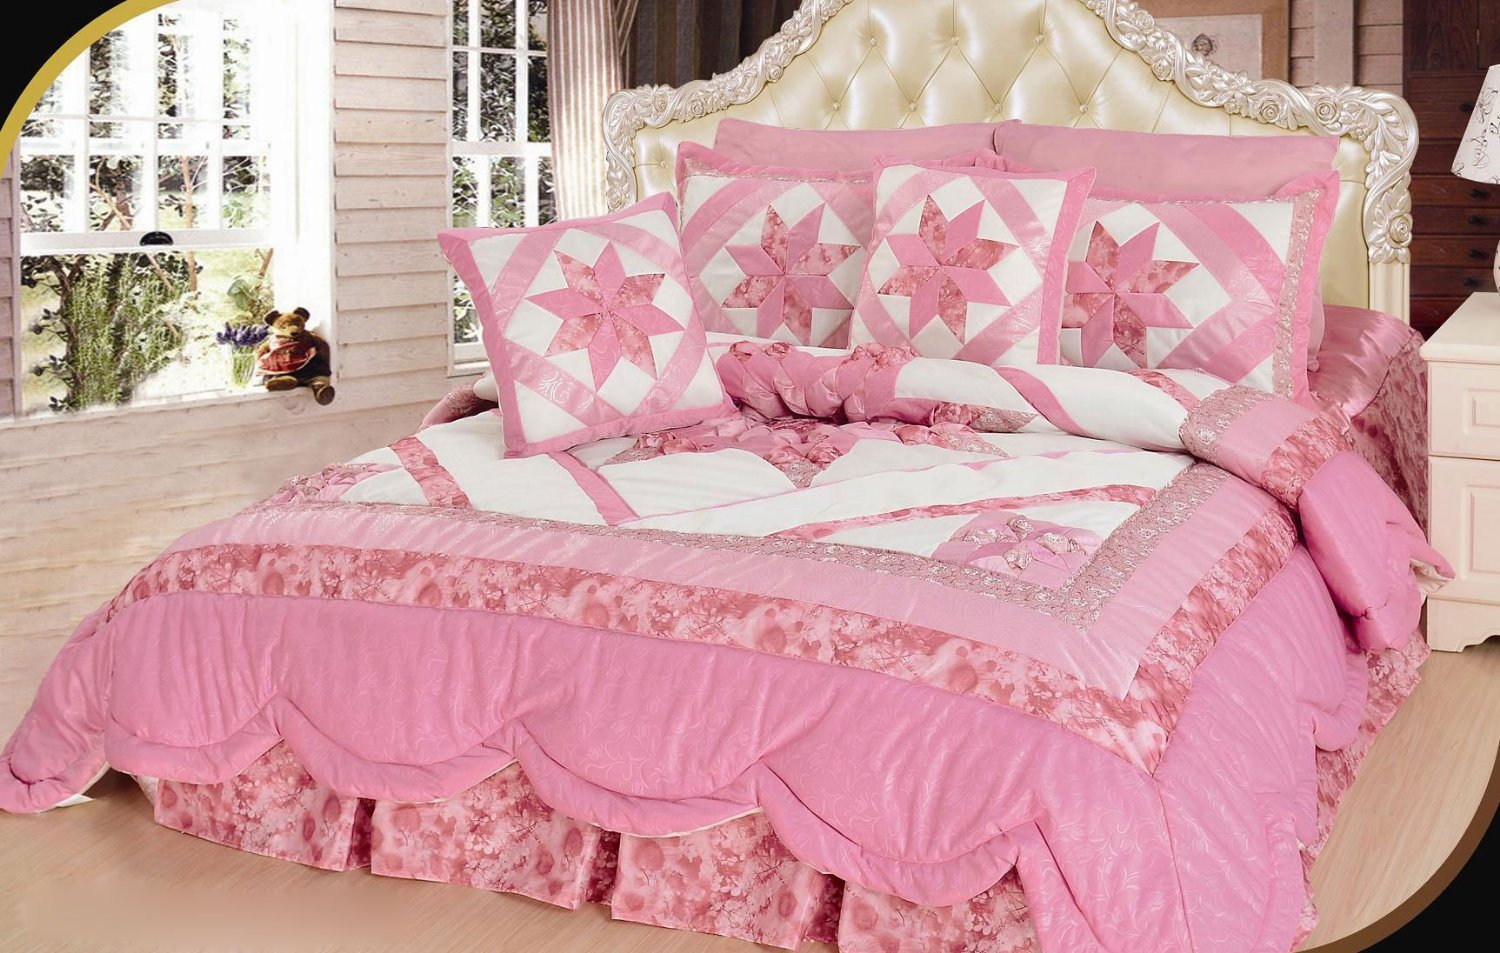 New Girly Girl Comforter Set, King Size, Pink